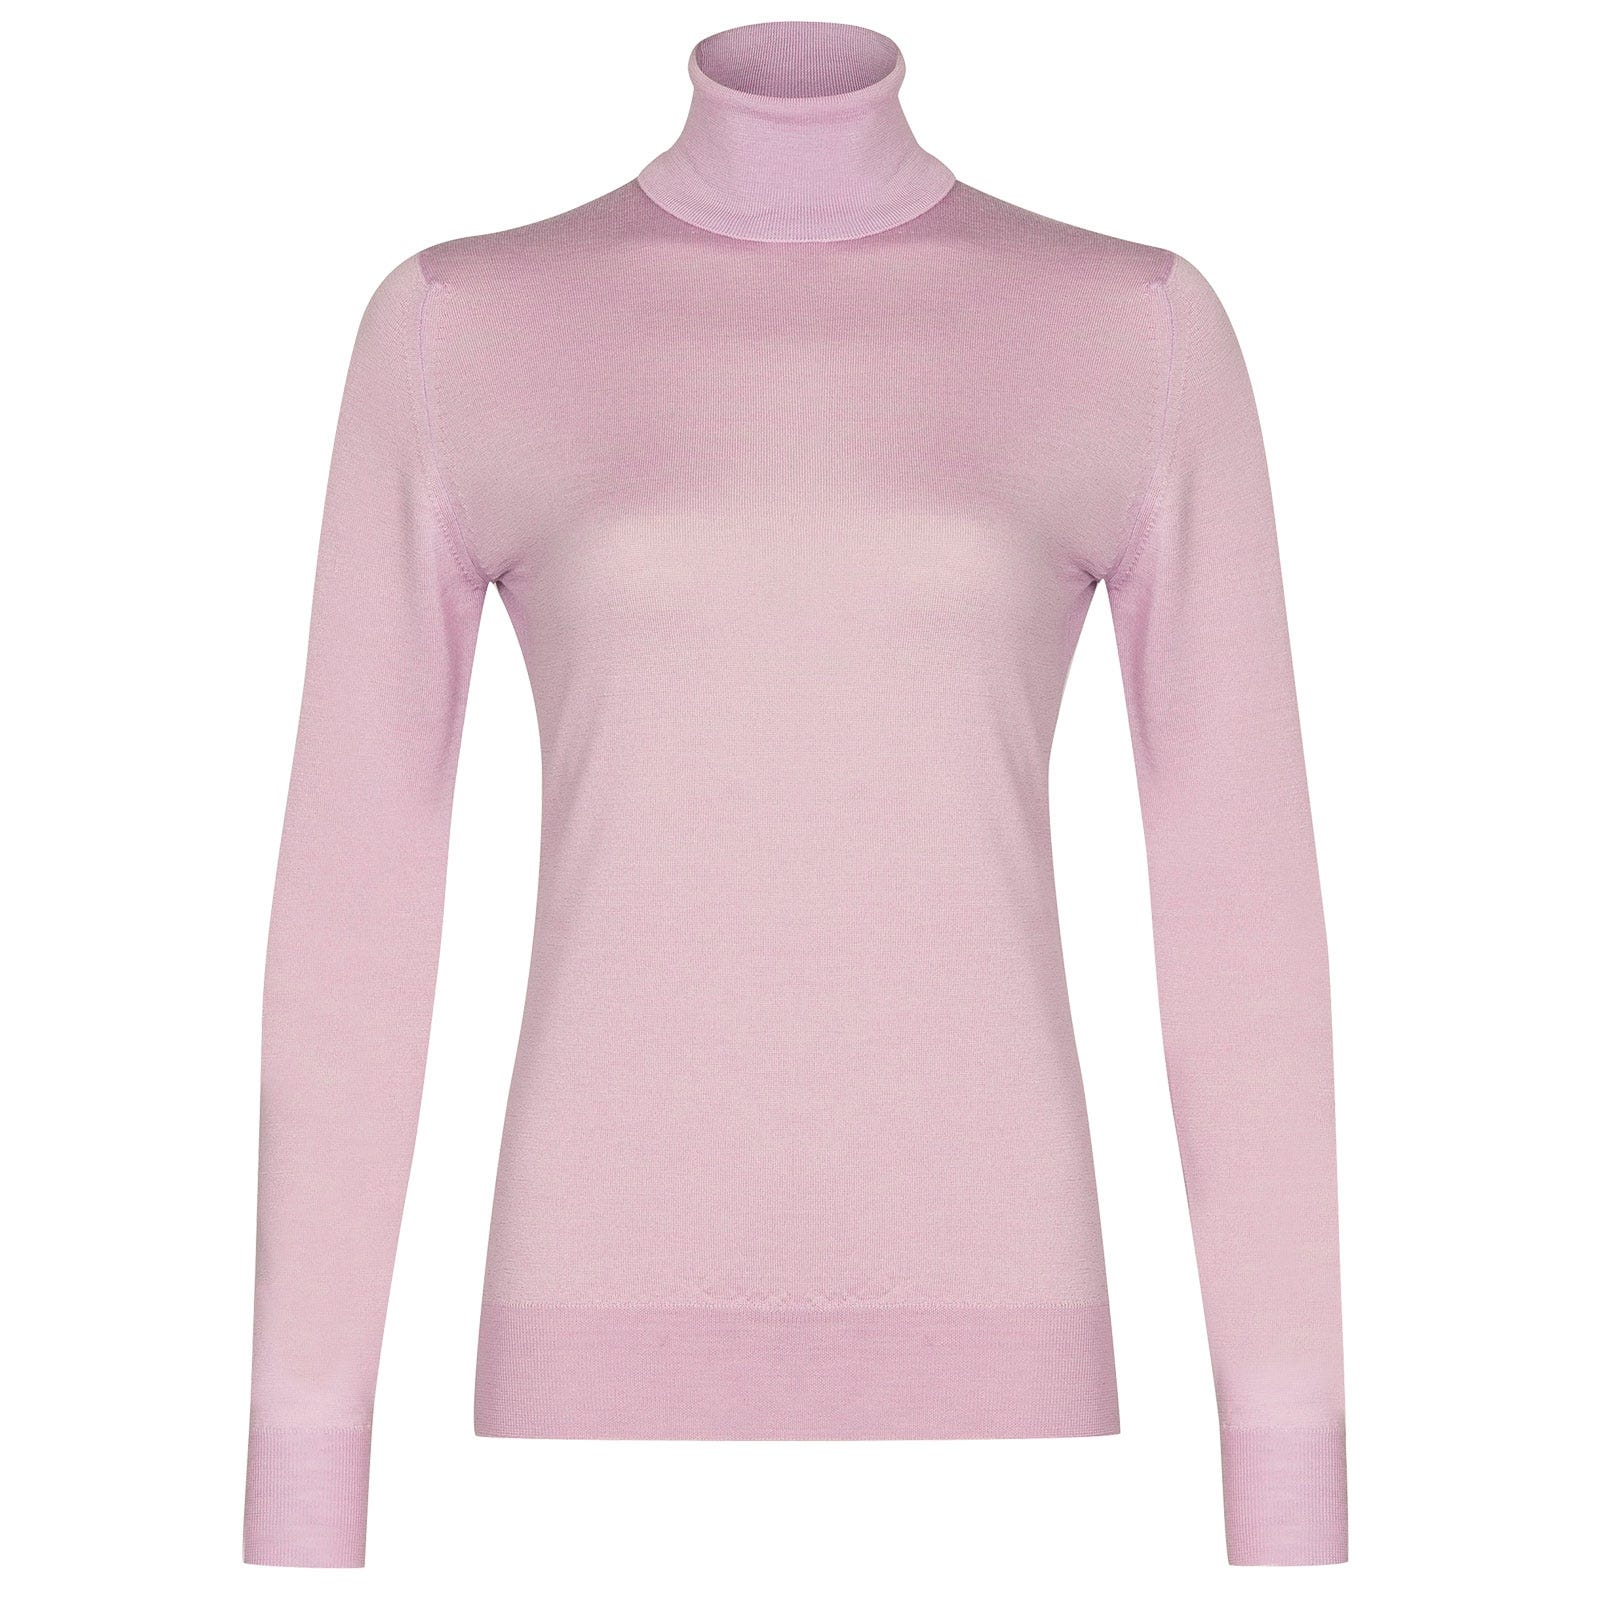 John Smedley Catkin in Pink Blossom Sweater-LGE